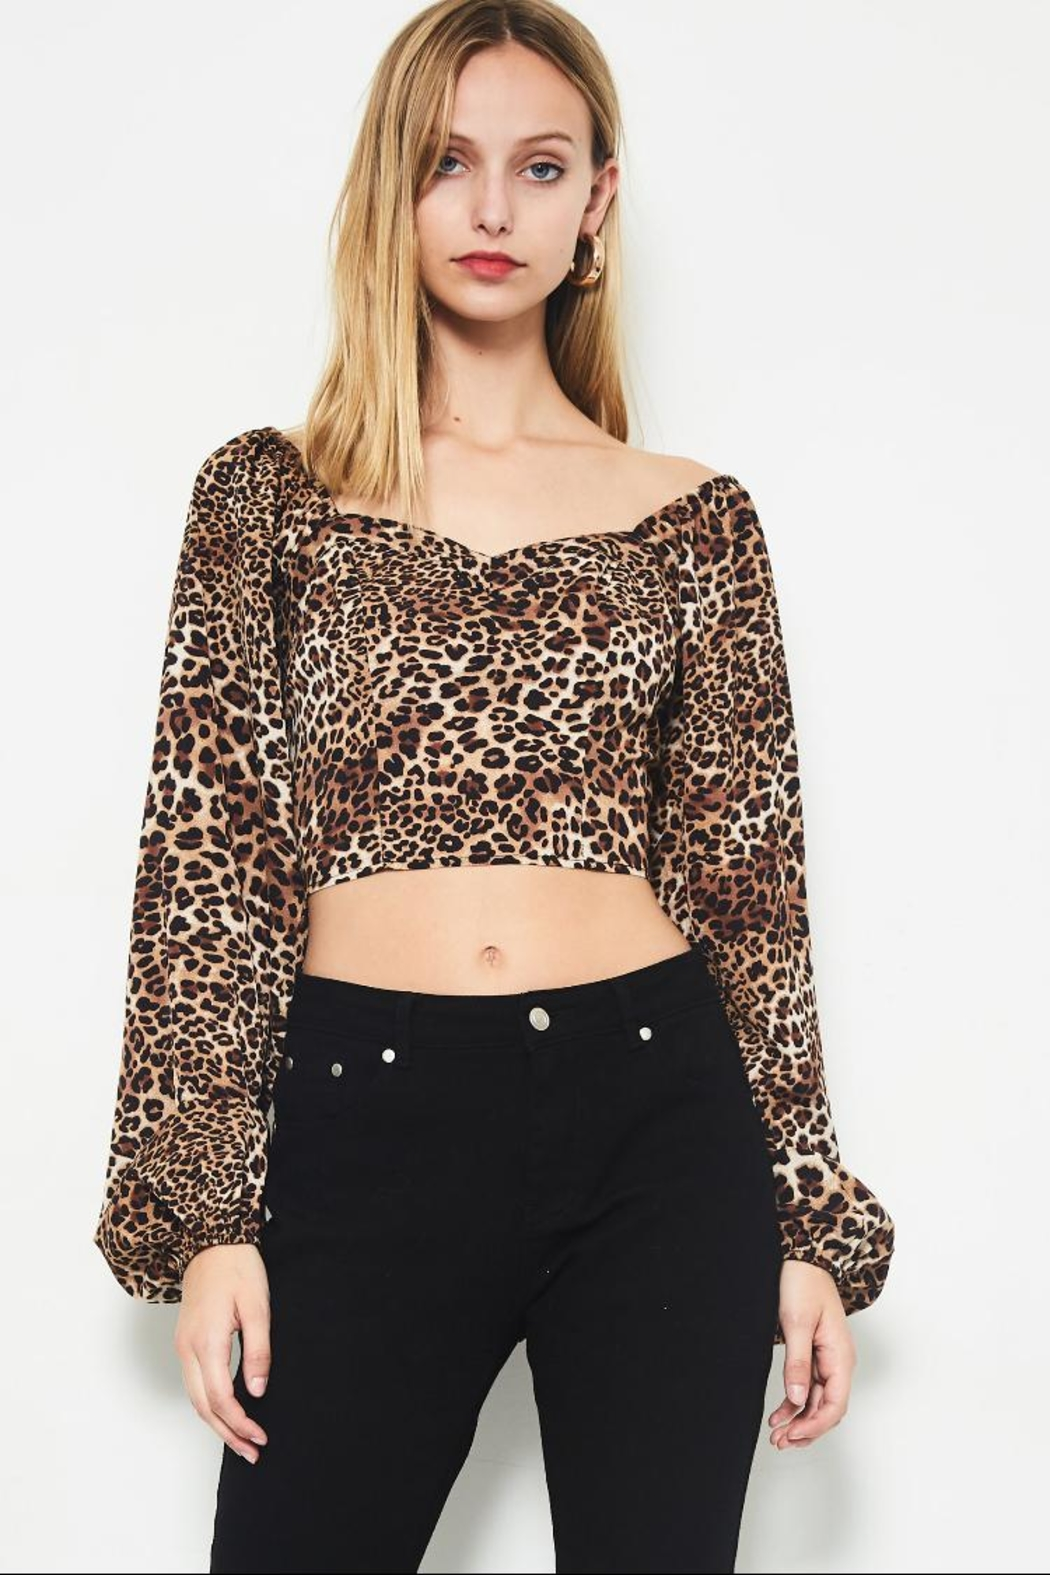 630315846568a etophe studios Cheetah Crop Top from Los Angeles by Chikas — Shoptiques